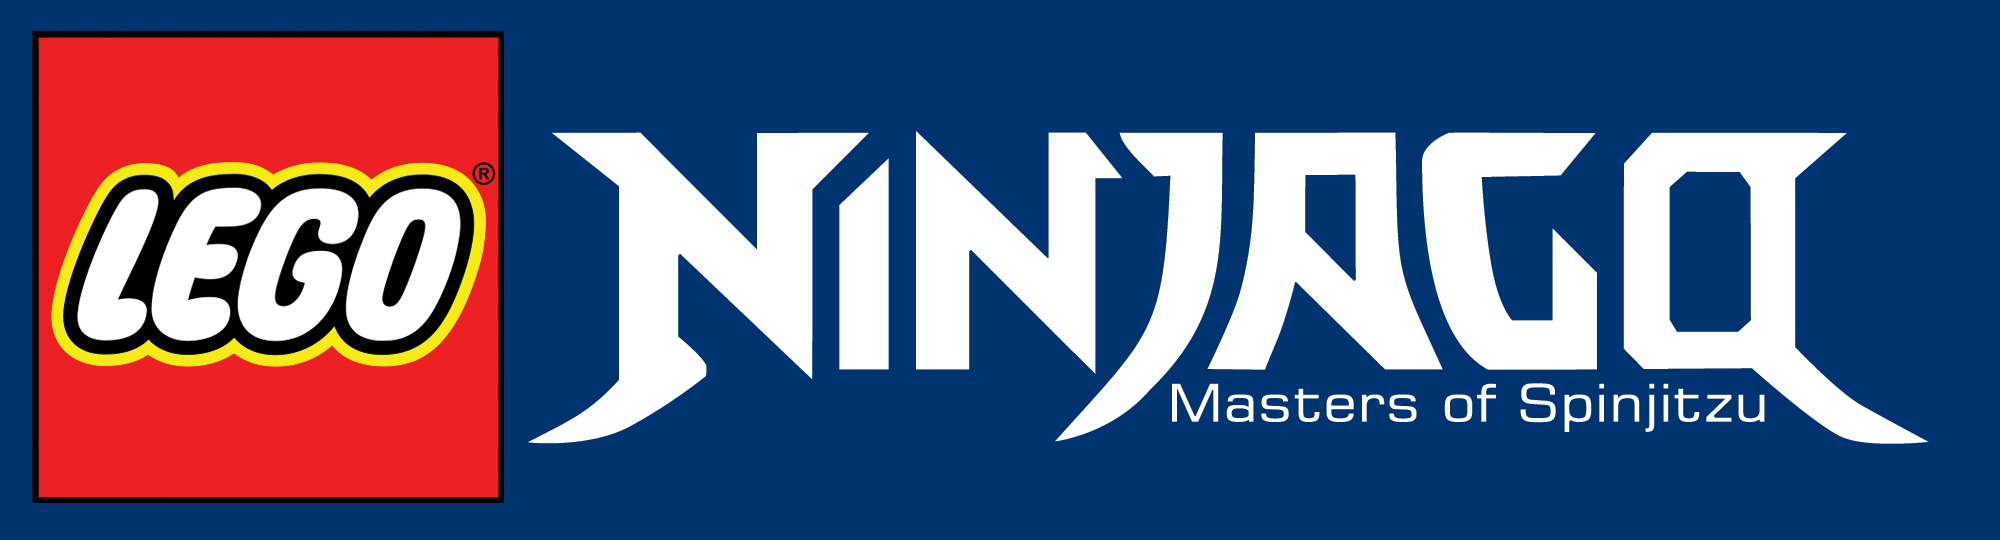 Lego ninjago stylized as ninjago masters of spinjitzu is - Lego ninjago logo ...